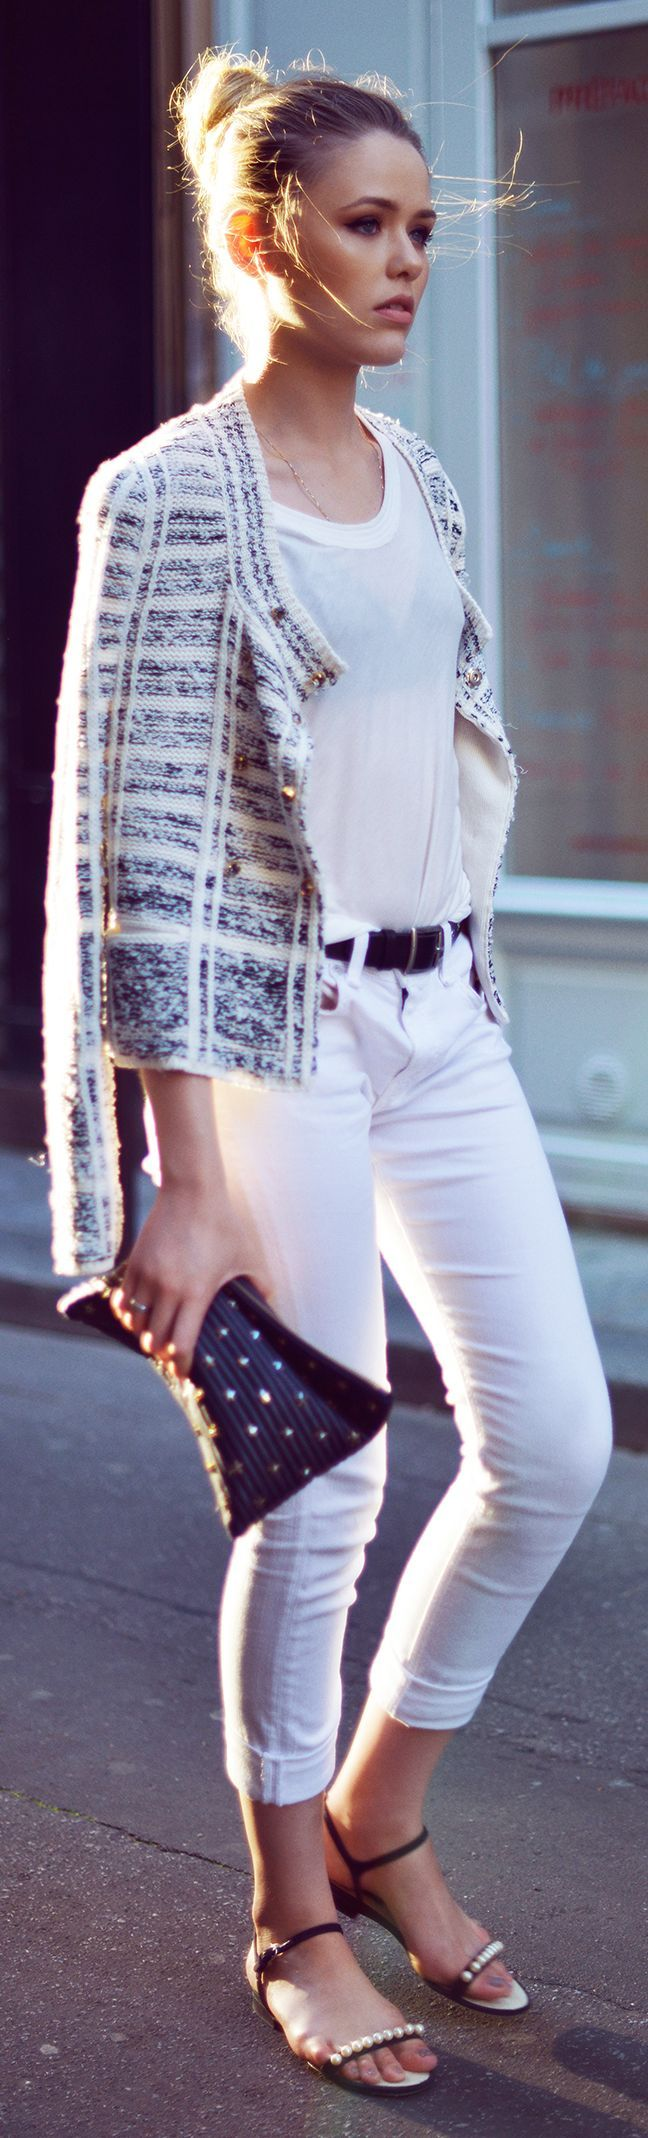 A nice casual style for a relaxed day on the town. Sonya Rykiel Black And White Patterned Boucle Jacket by Kayture